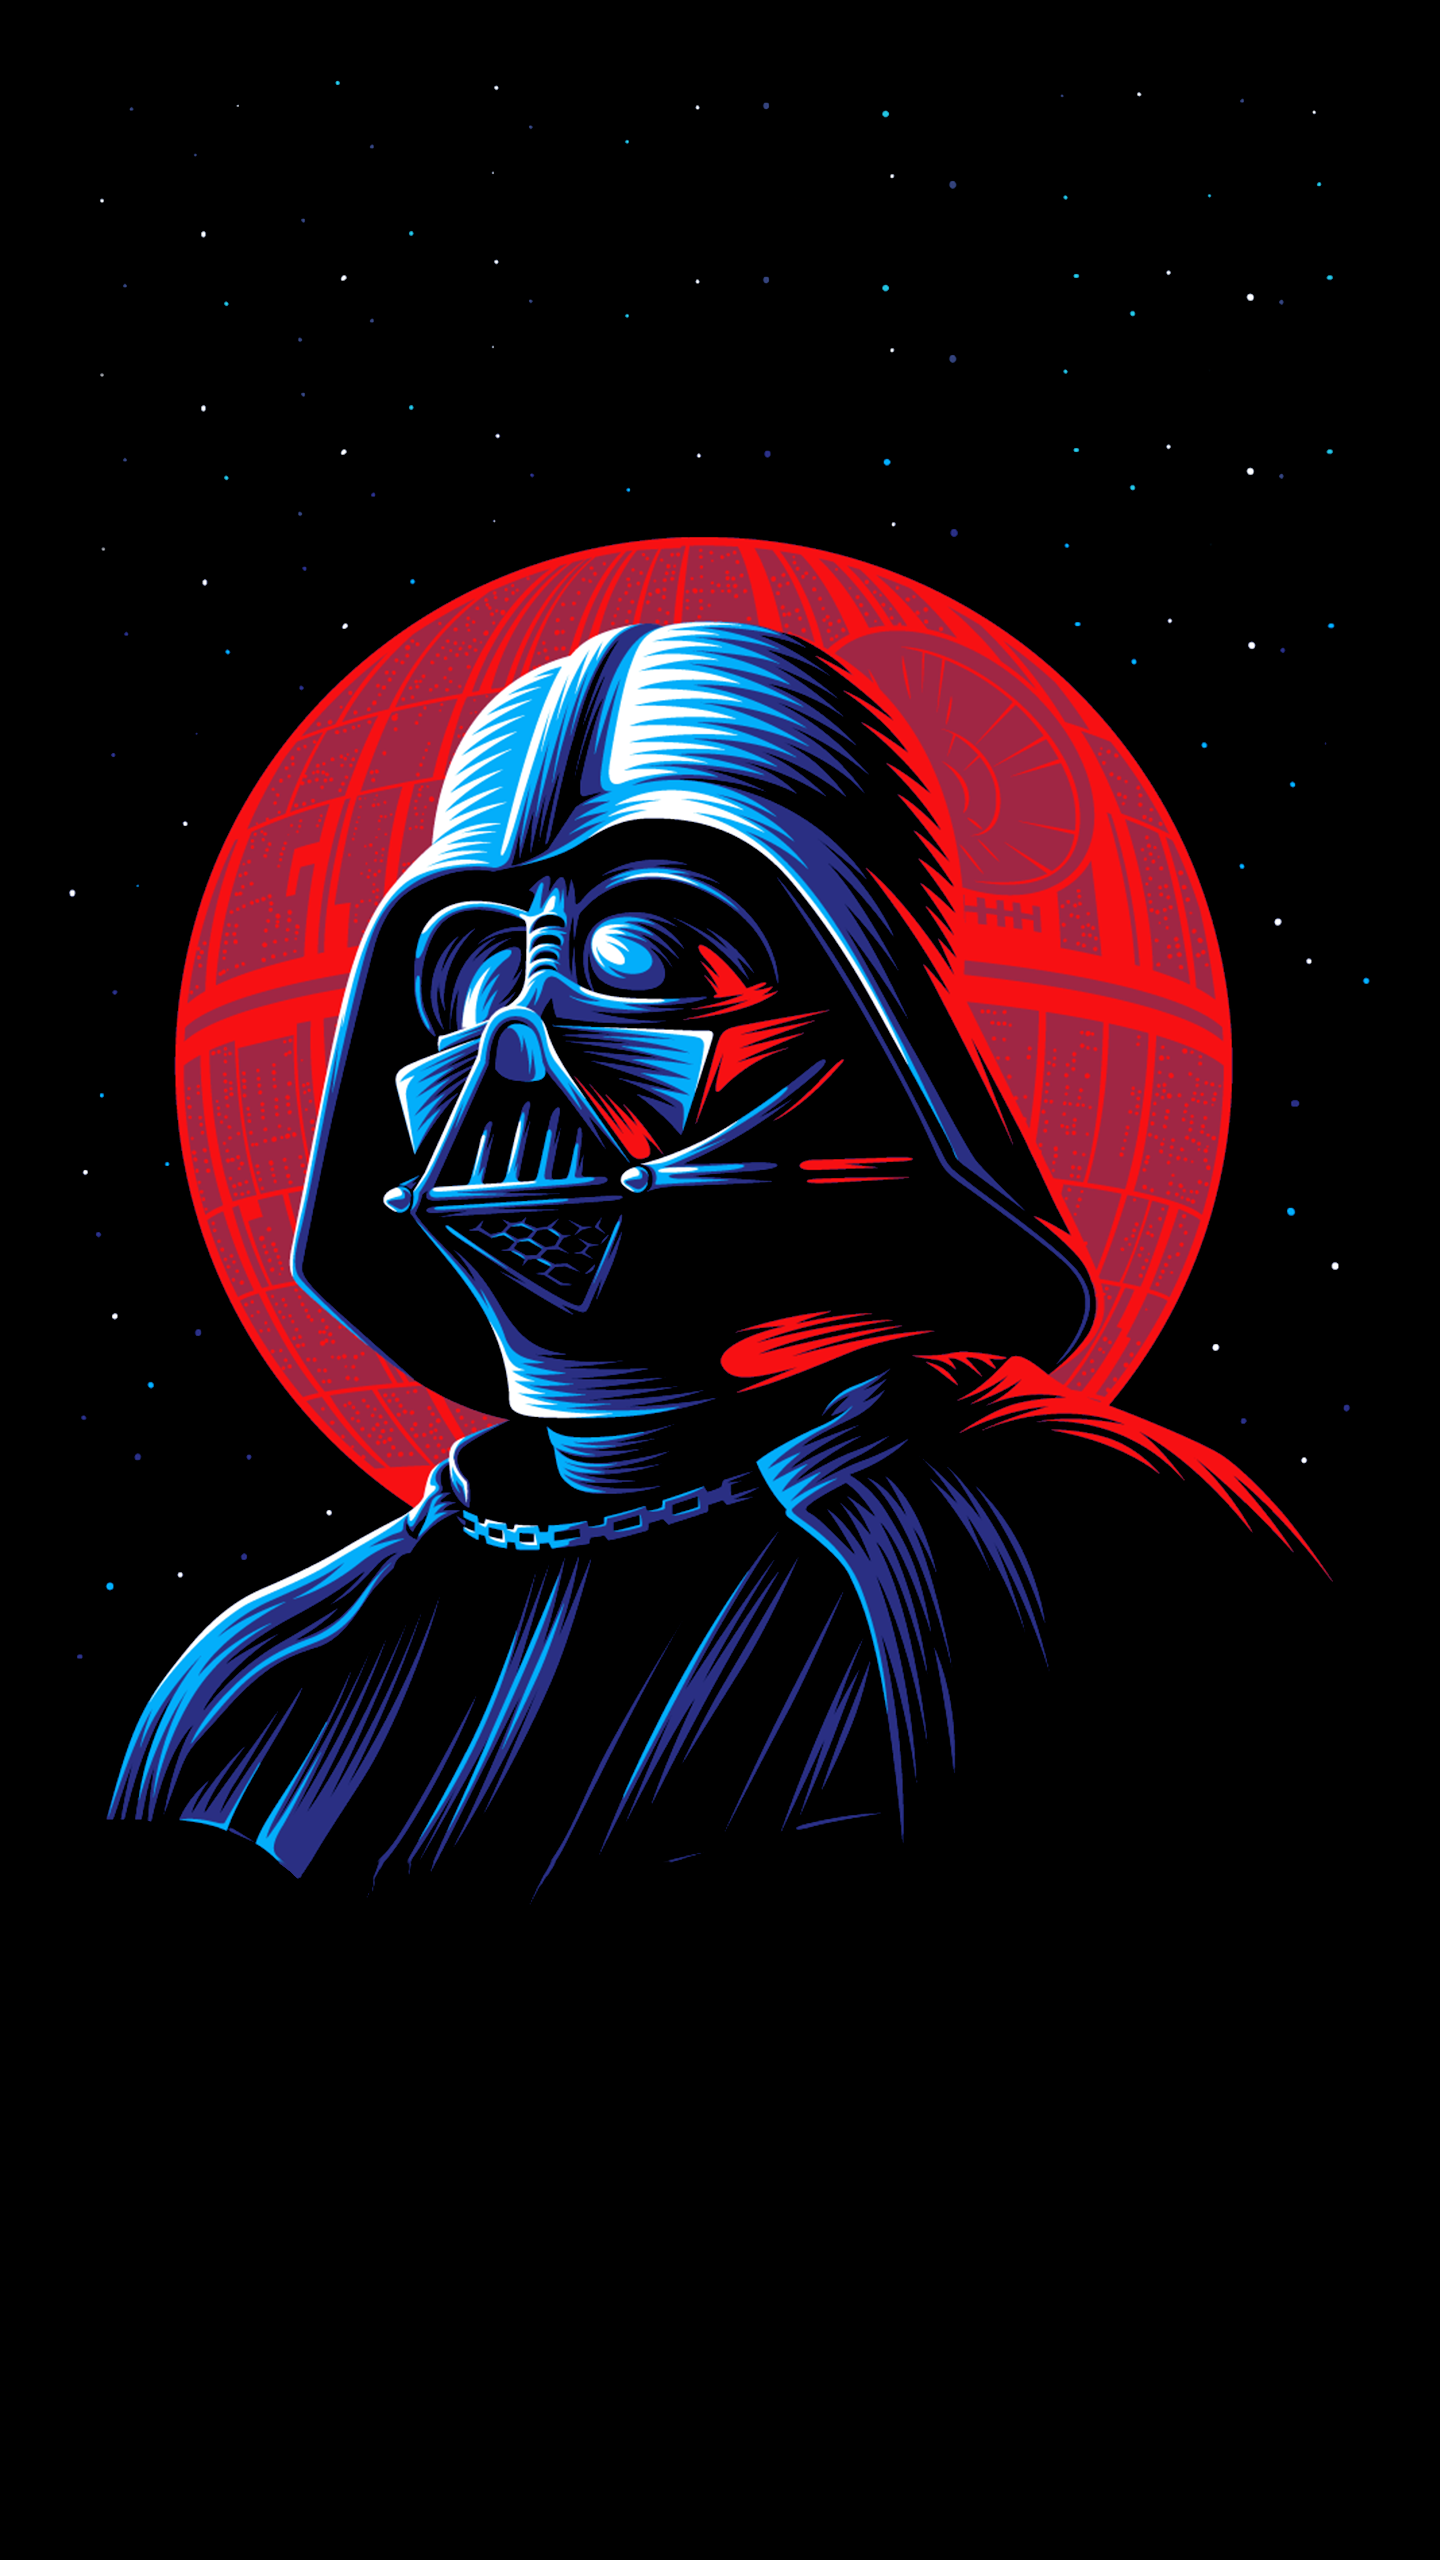 Darth Vader Is The Dark Side Star Wars Background Star Wars Art Star Wars Wallpaper